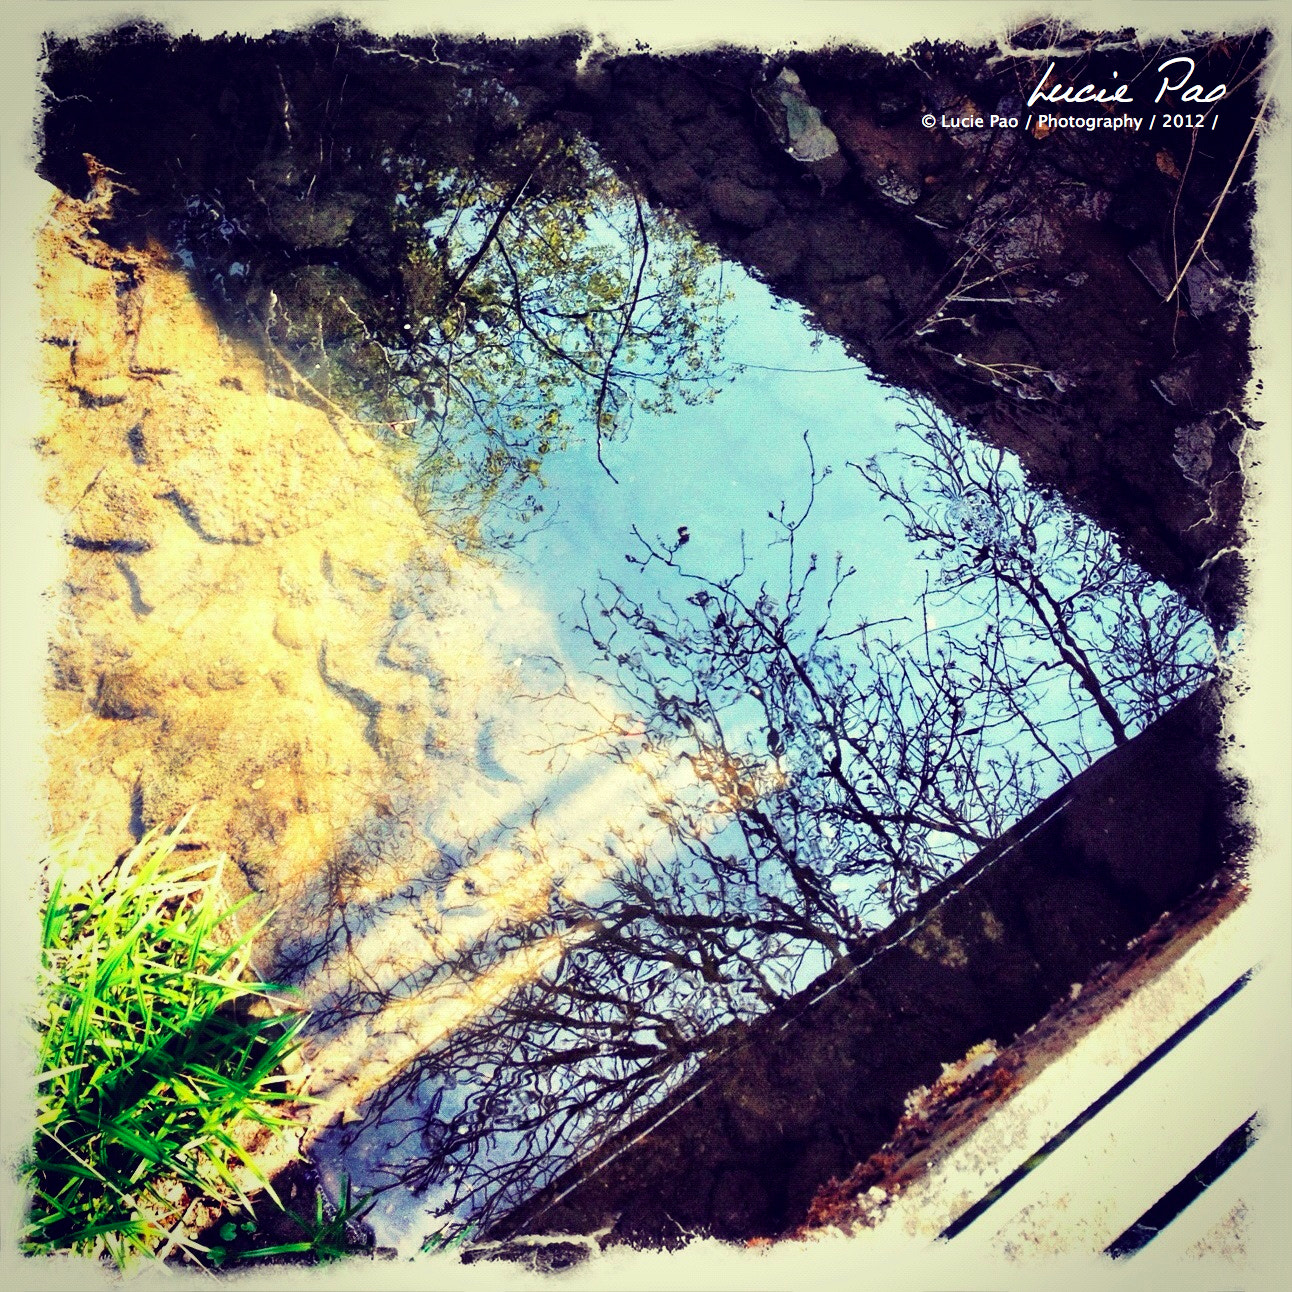 Photograph Reflets d'Eau by Lucie Pao on 500px